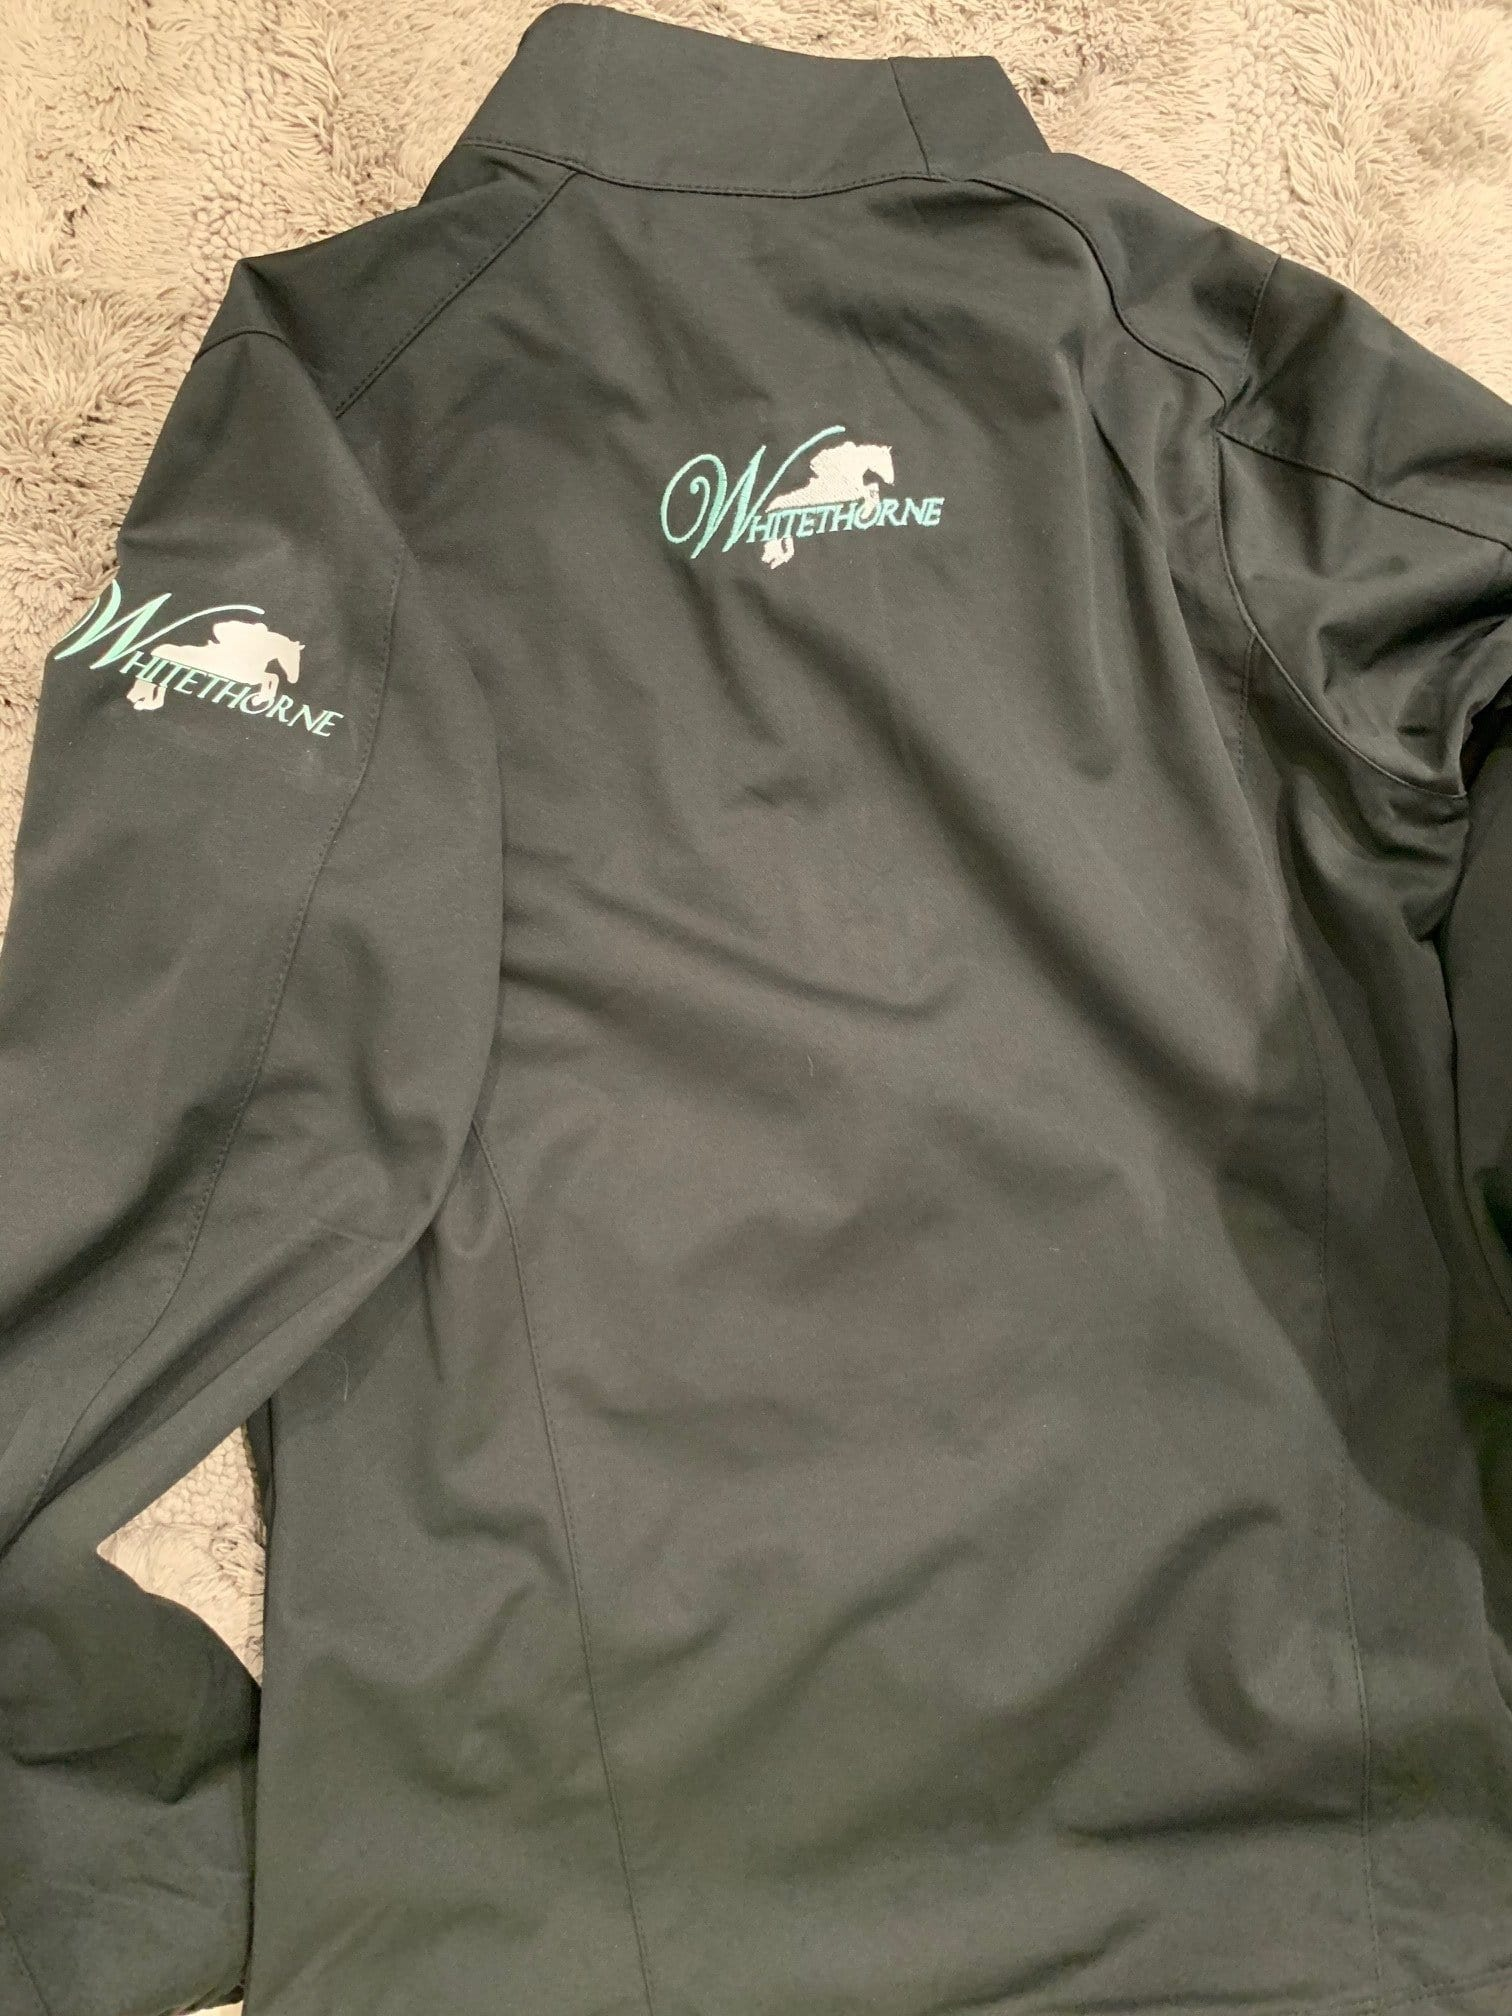 Equestrian Team Apparel Custom Jacket Whitehorne Jacket equestrian team apparel online tack store mobile tack store custom farm apparel custom show stable clothing equestrian lifestyle horse show clothing riding clothes horses equestrian tack store